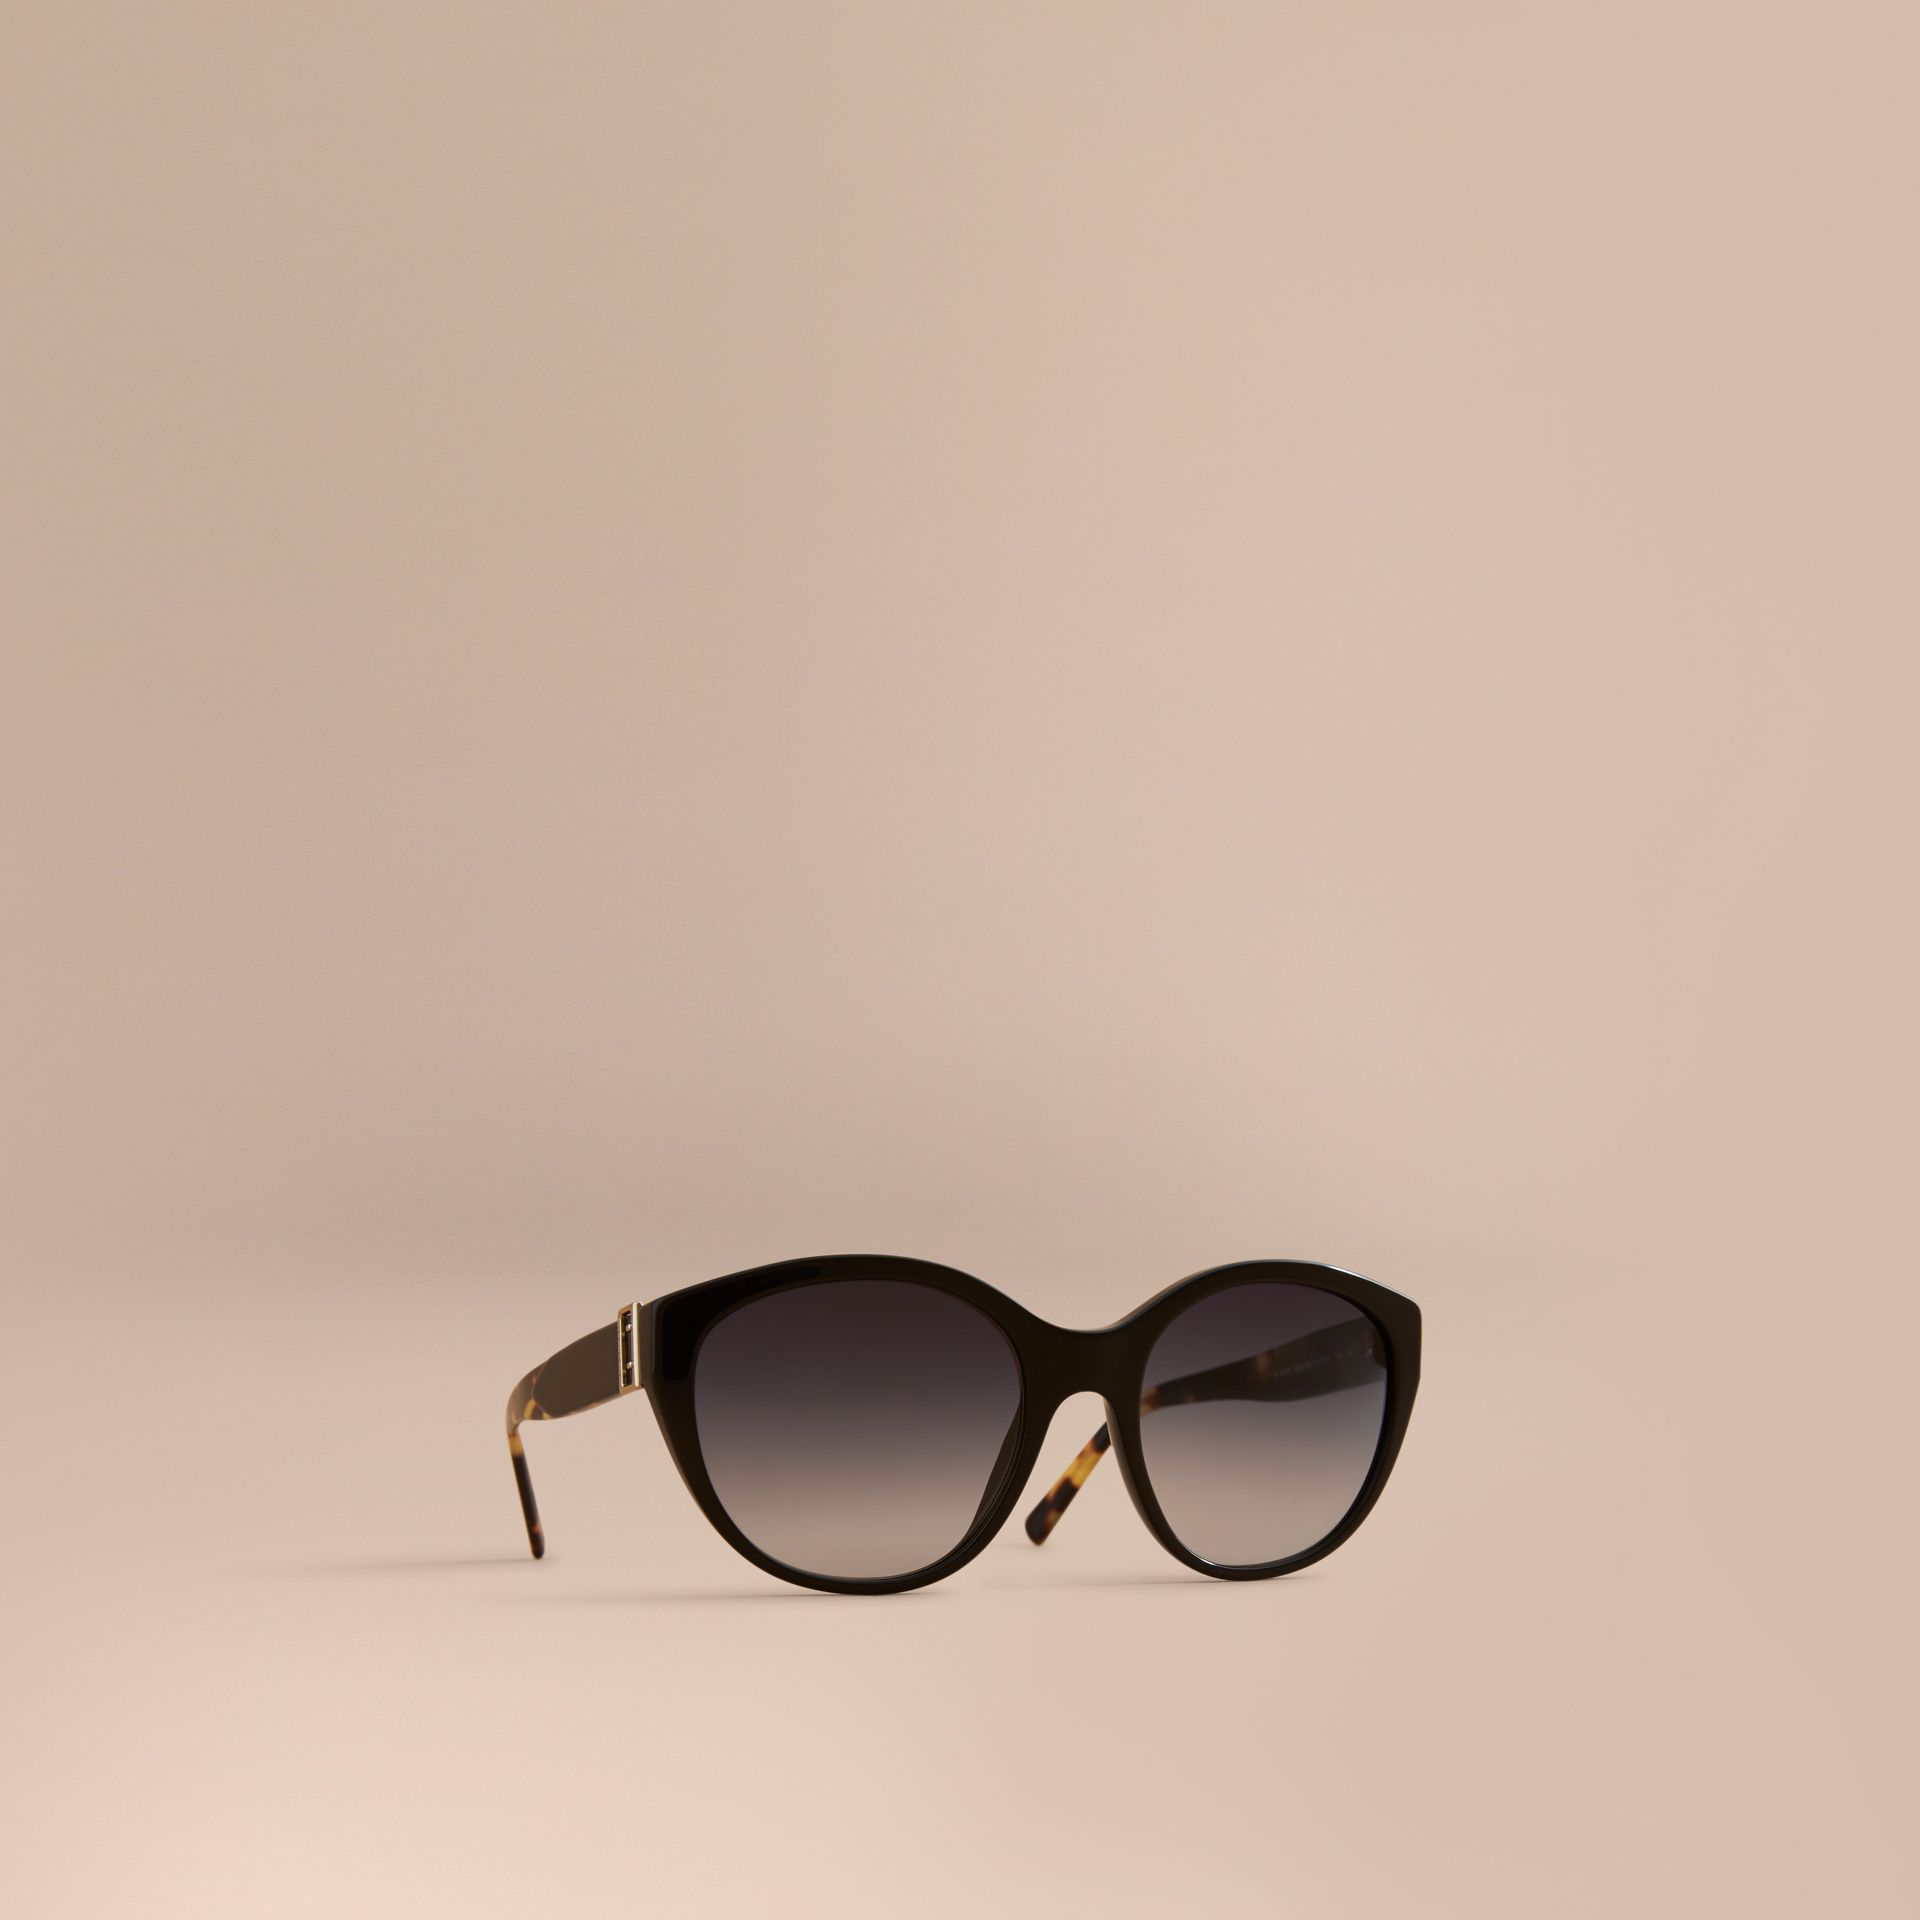 Buckle Detail Round Frame Sunglasses in Black - Women | Burberry United States - gallery image 1